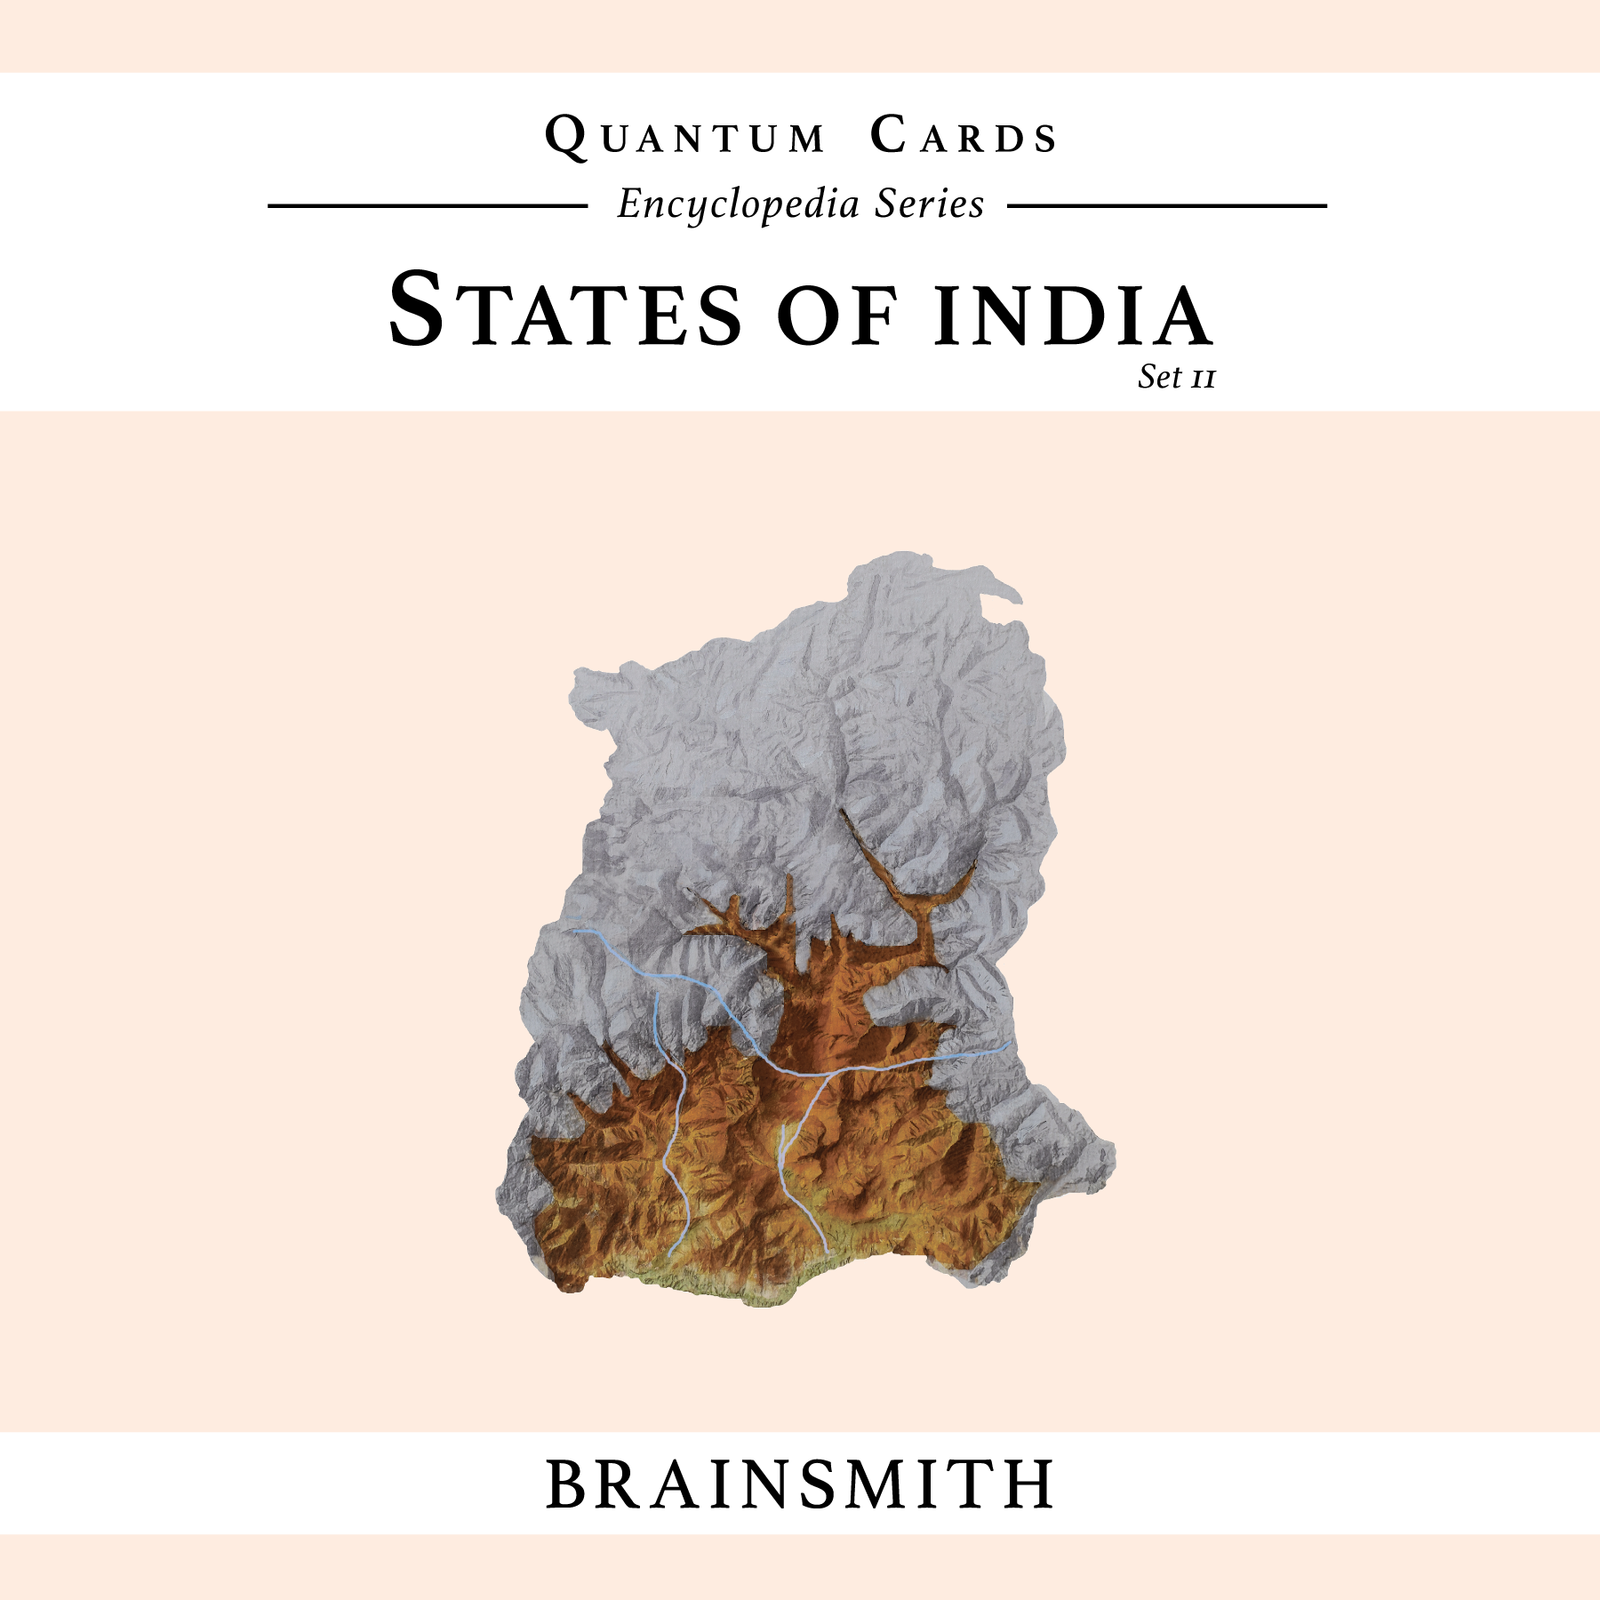 States of India (Set II)